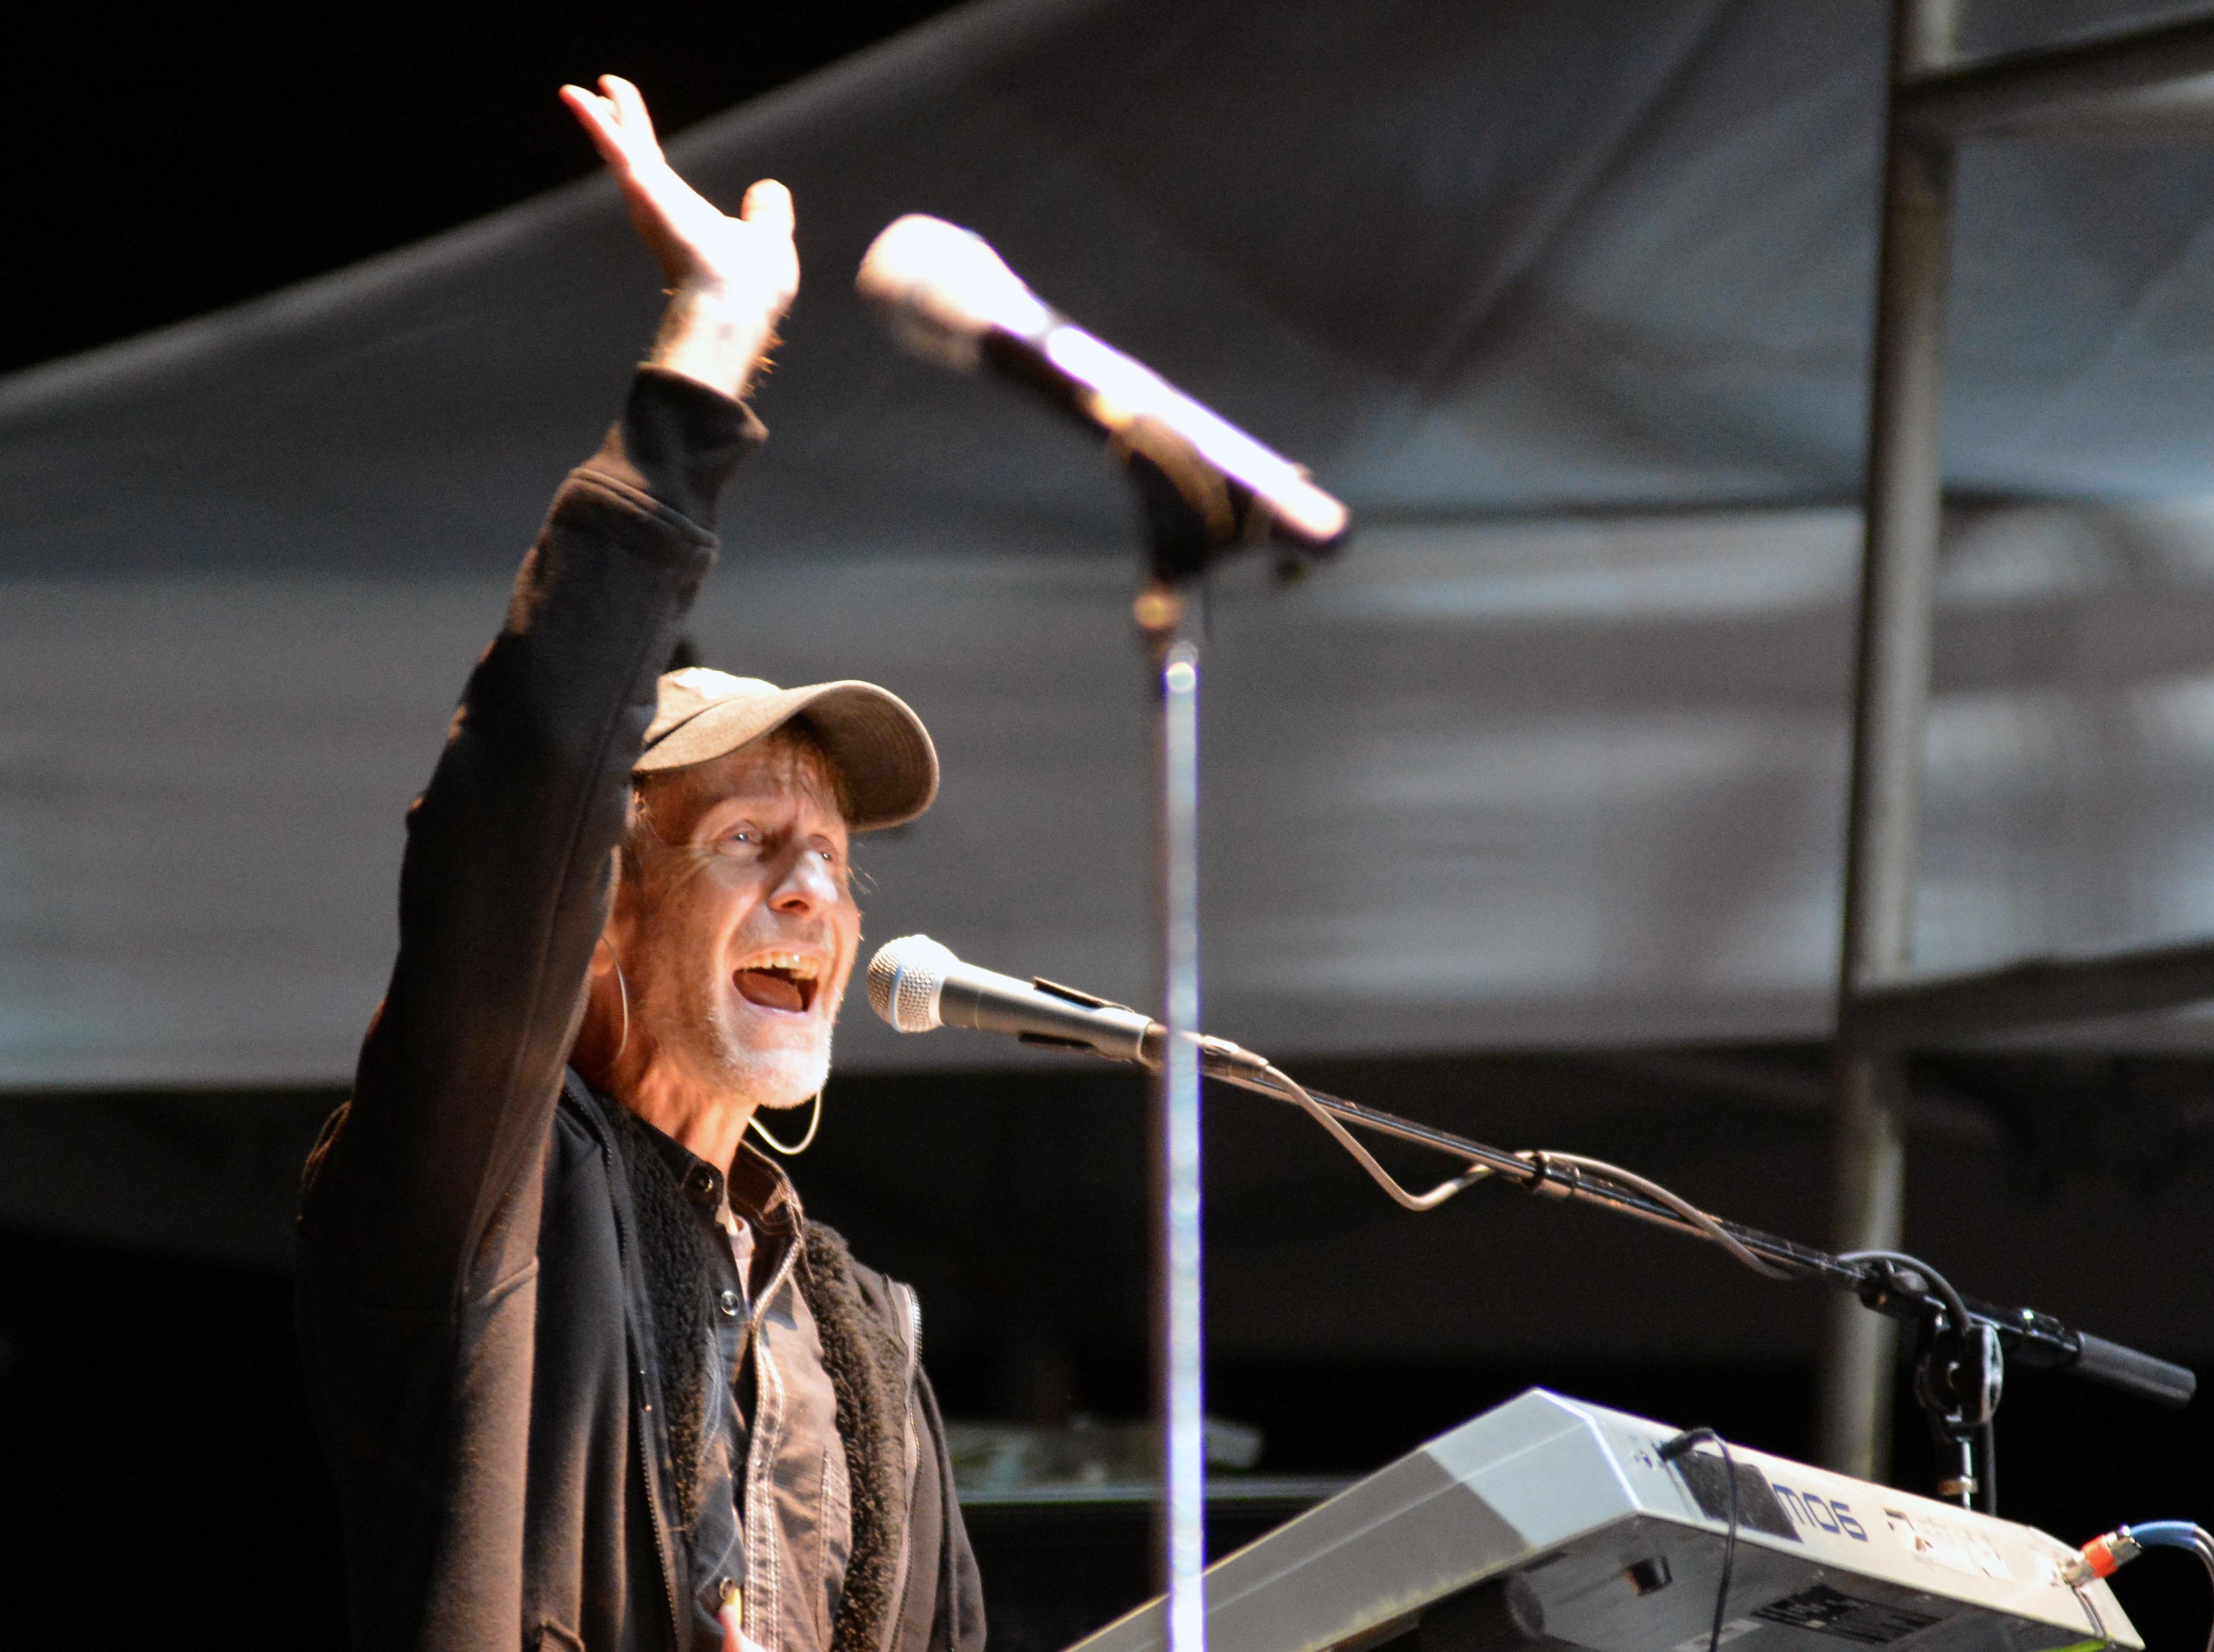 Keyboardist Greg Hubbard, of Sawyer Brown, performs on the Main Stage at the Las Cruces Country Music Festival on Saturday, Oct. 20, 2018.